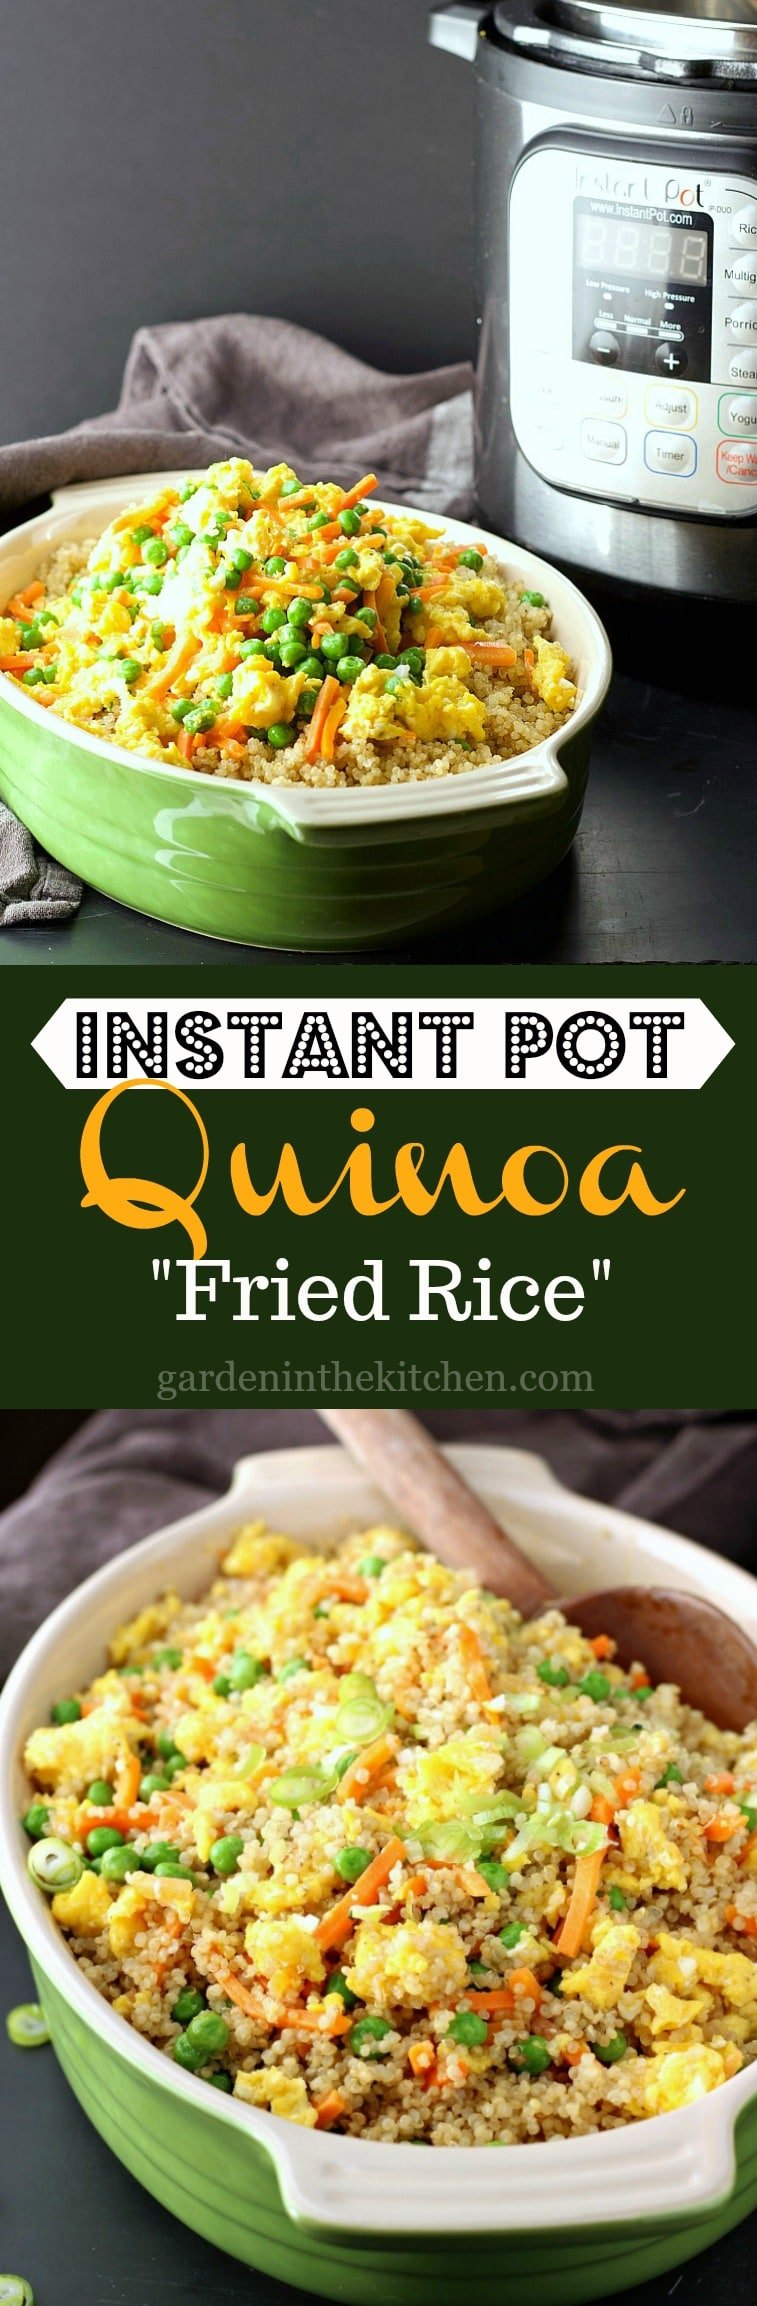 "A healthier take on the classic Vegetable Fried Rice, this Instant Pot Quinoa ""Fried Rice"" is just as delicious and will make you feel good too!"